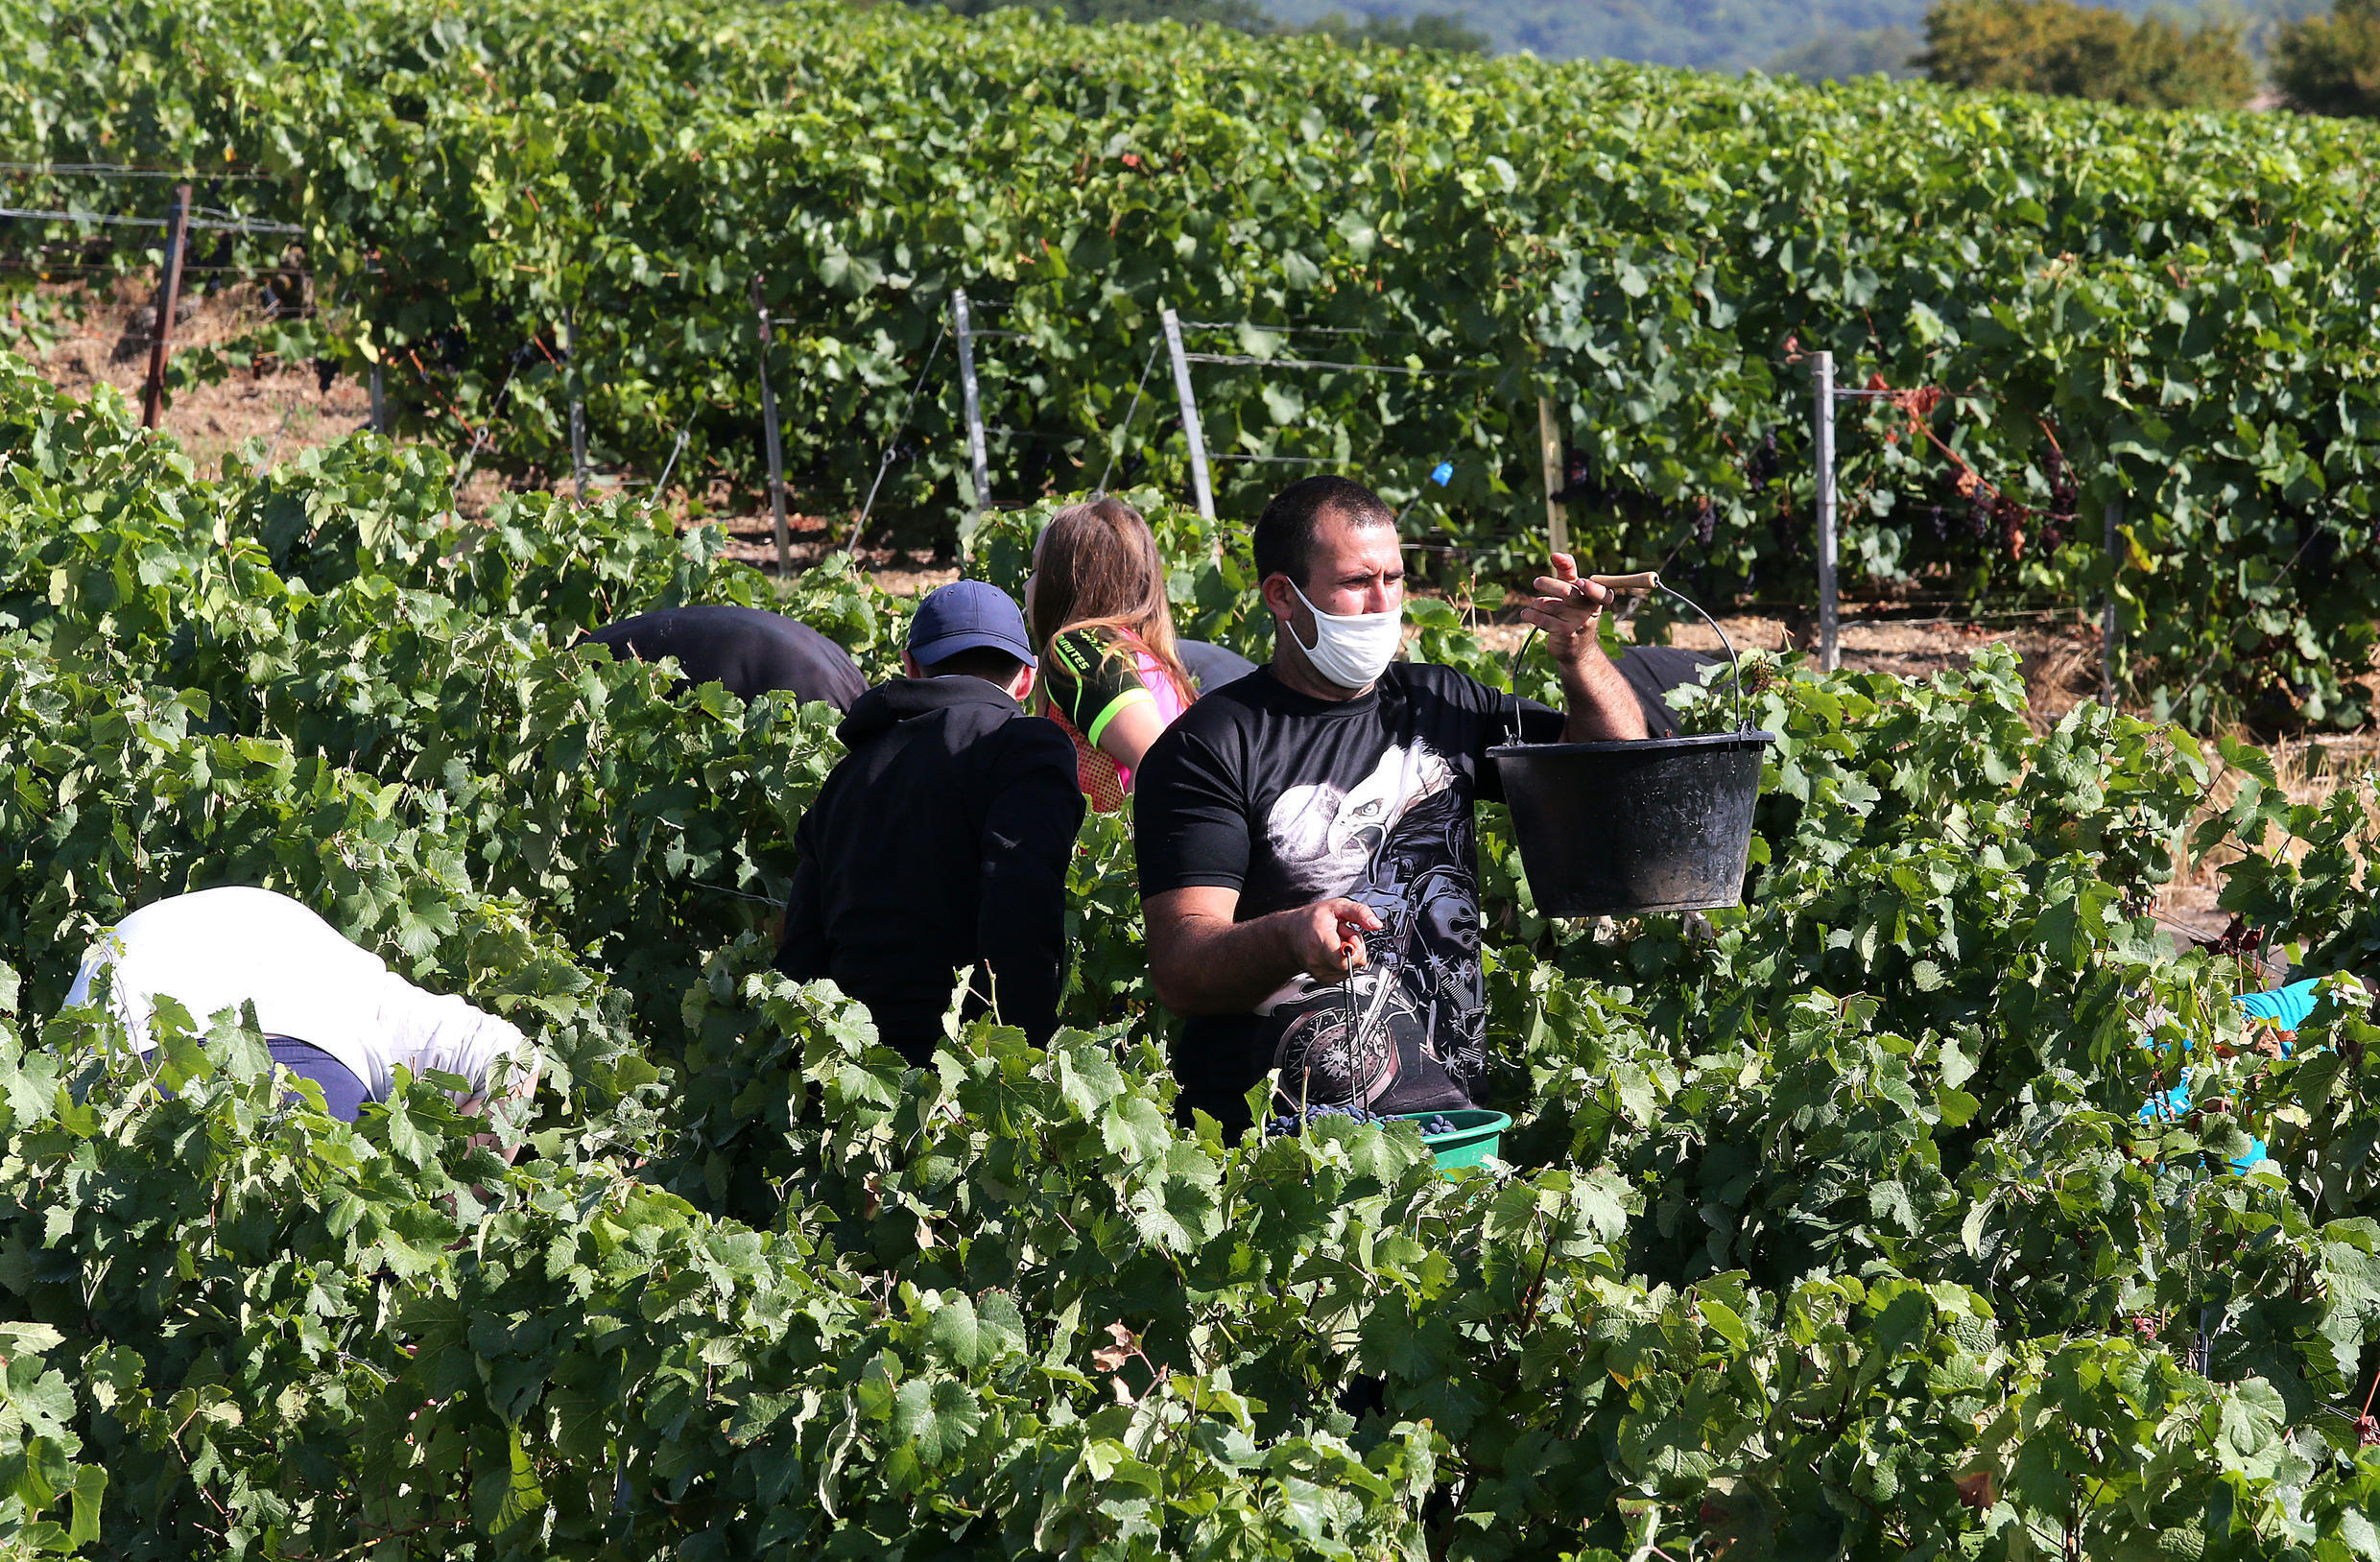 Winegrowers in Avenay-Val-d'Or, in France's Champagne region, pictured in August 2020.